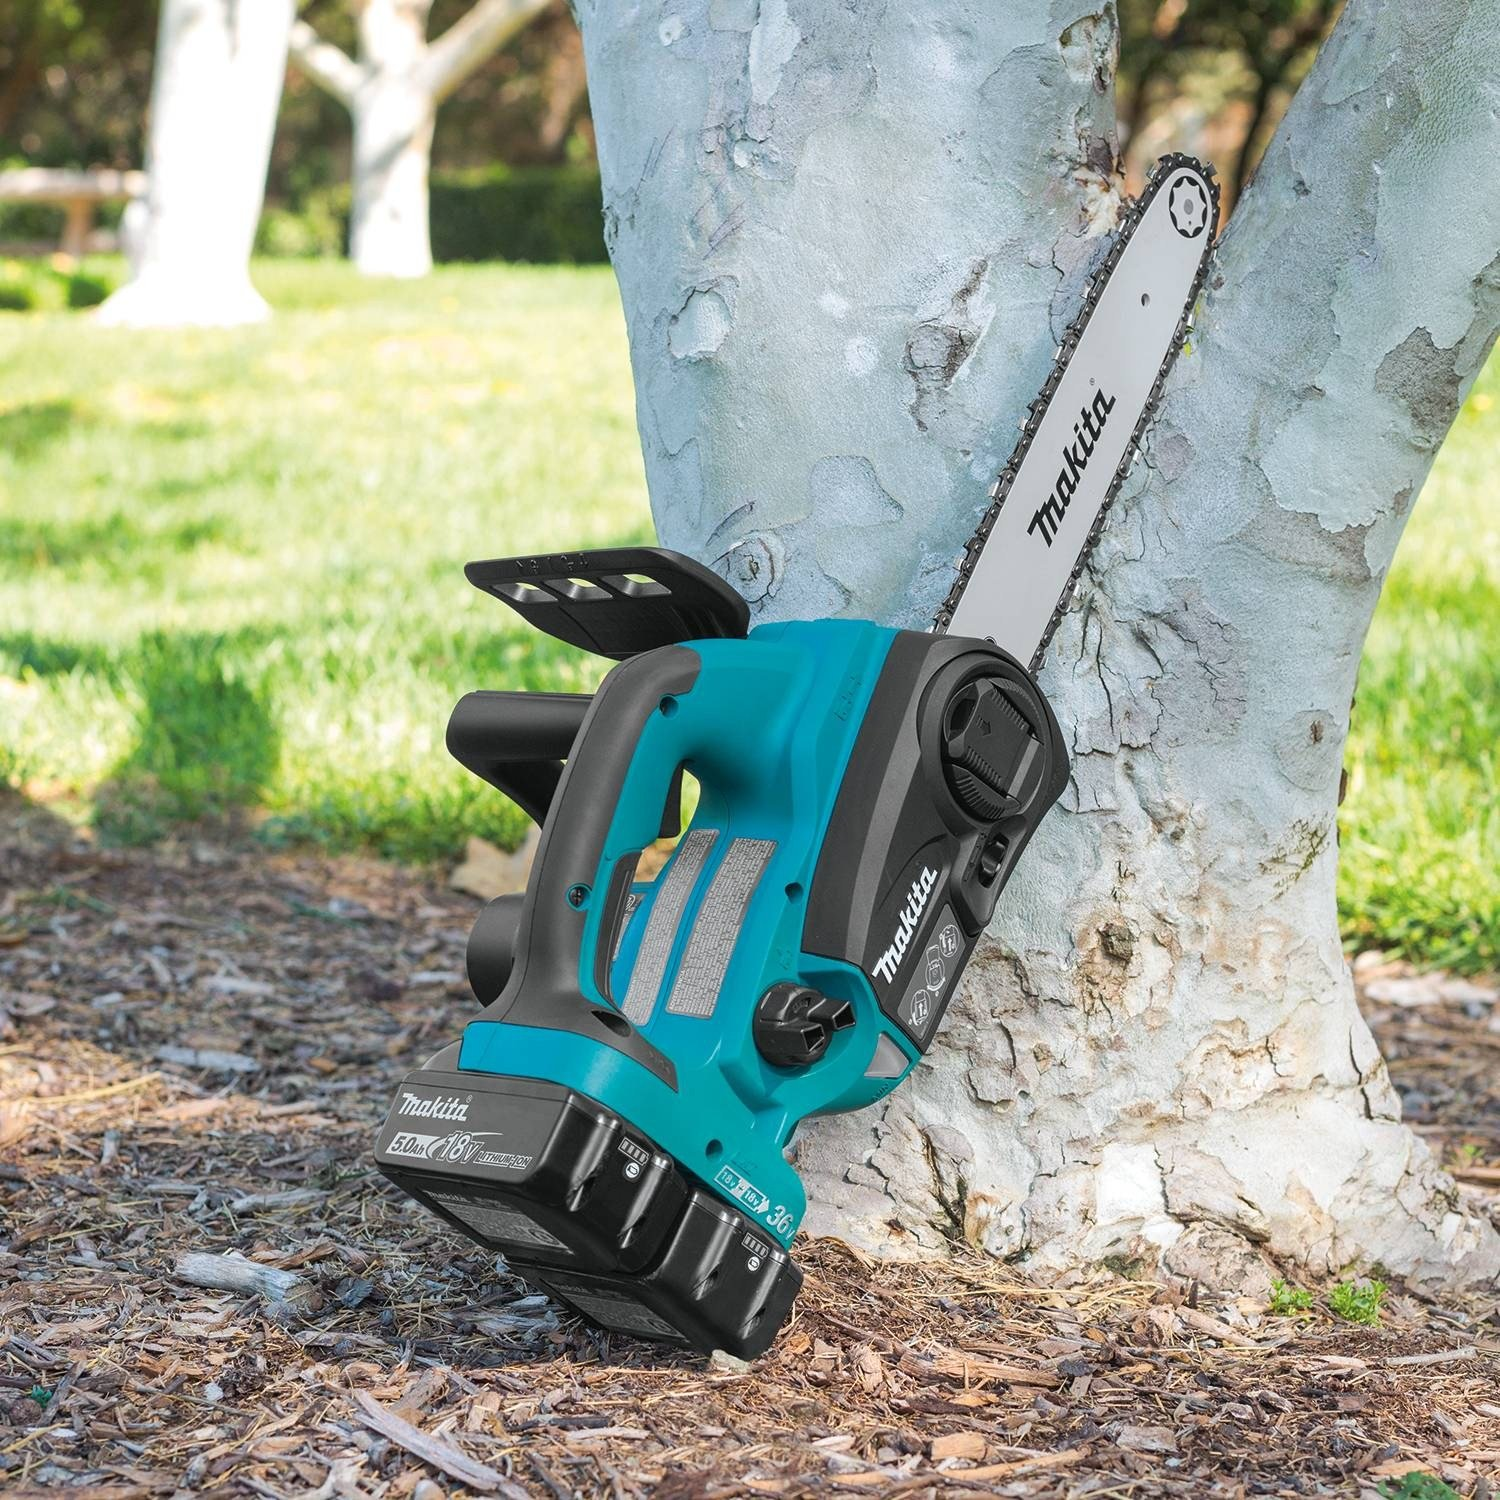 Makita XCU02PT1 Chainsaws product image 5